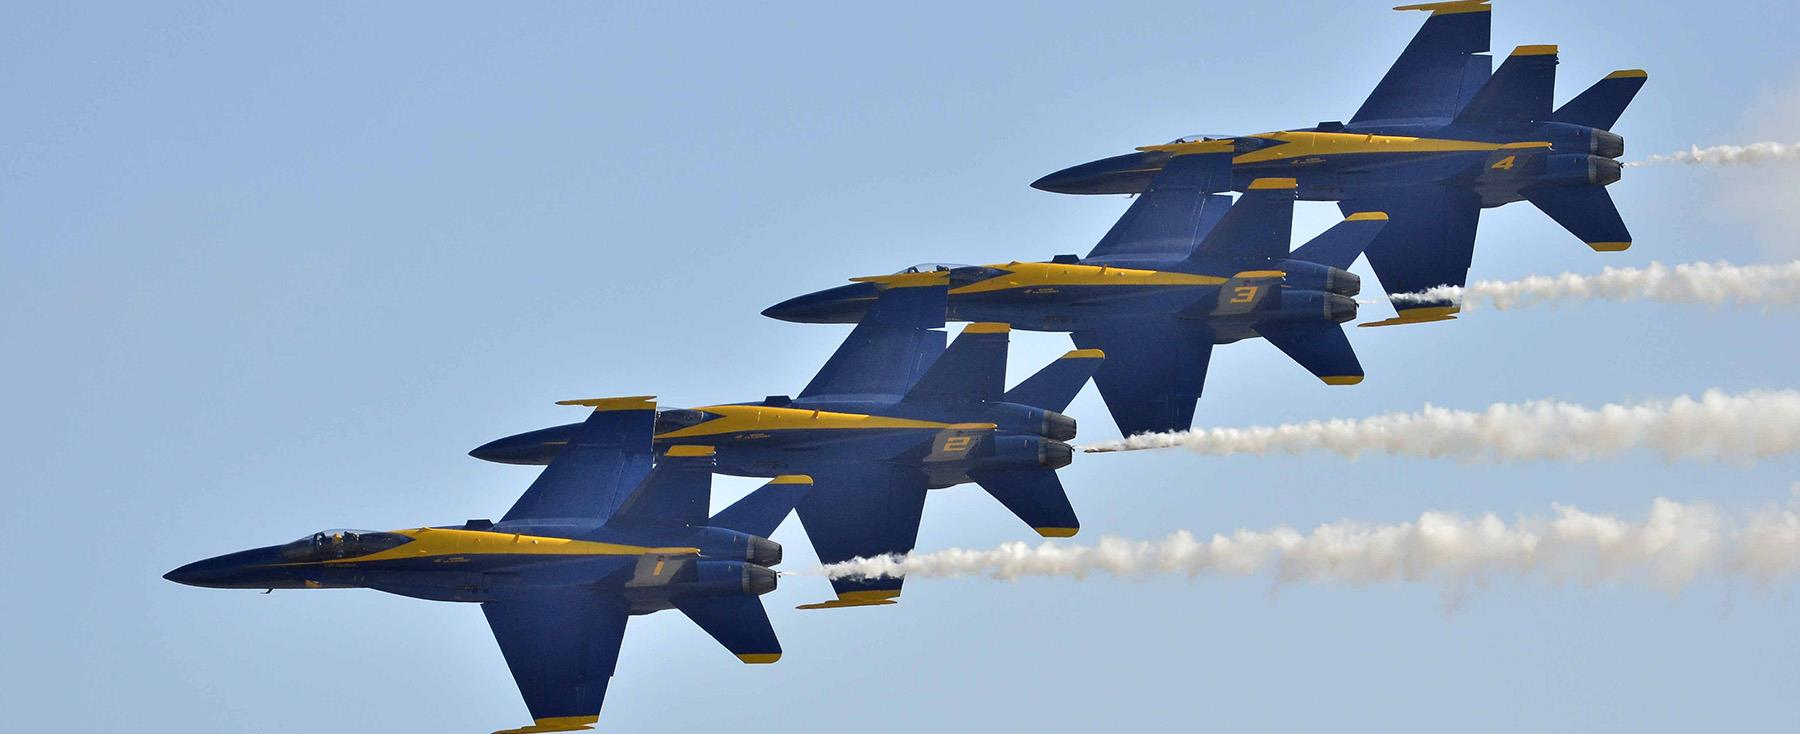 MCAS Miramar Air Show - Blue Angels